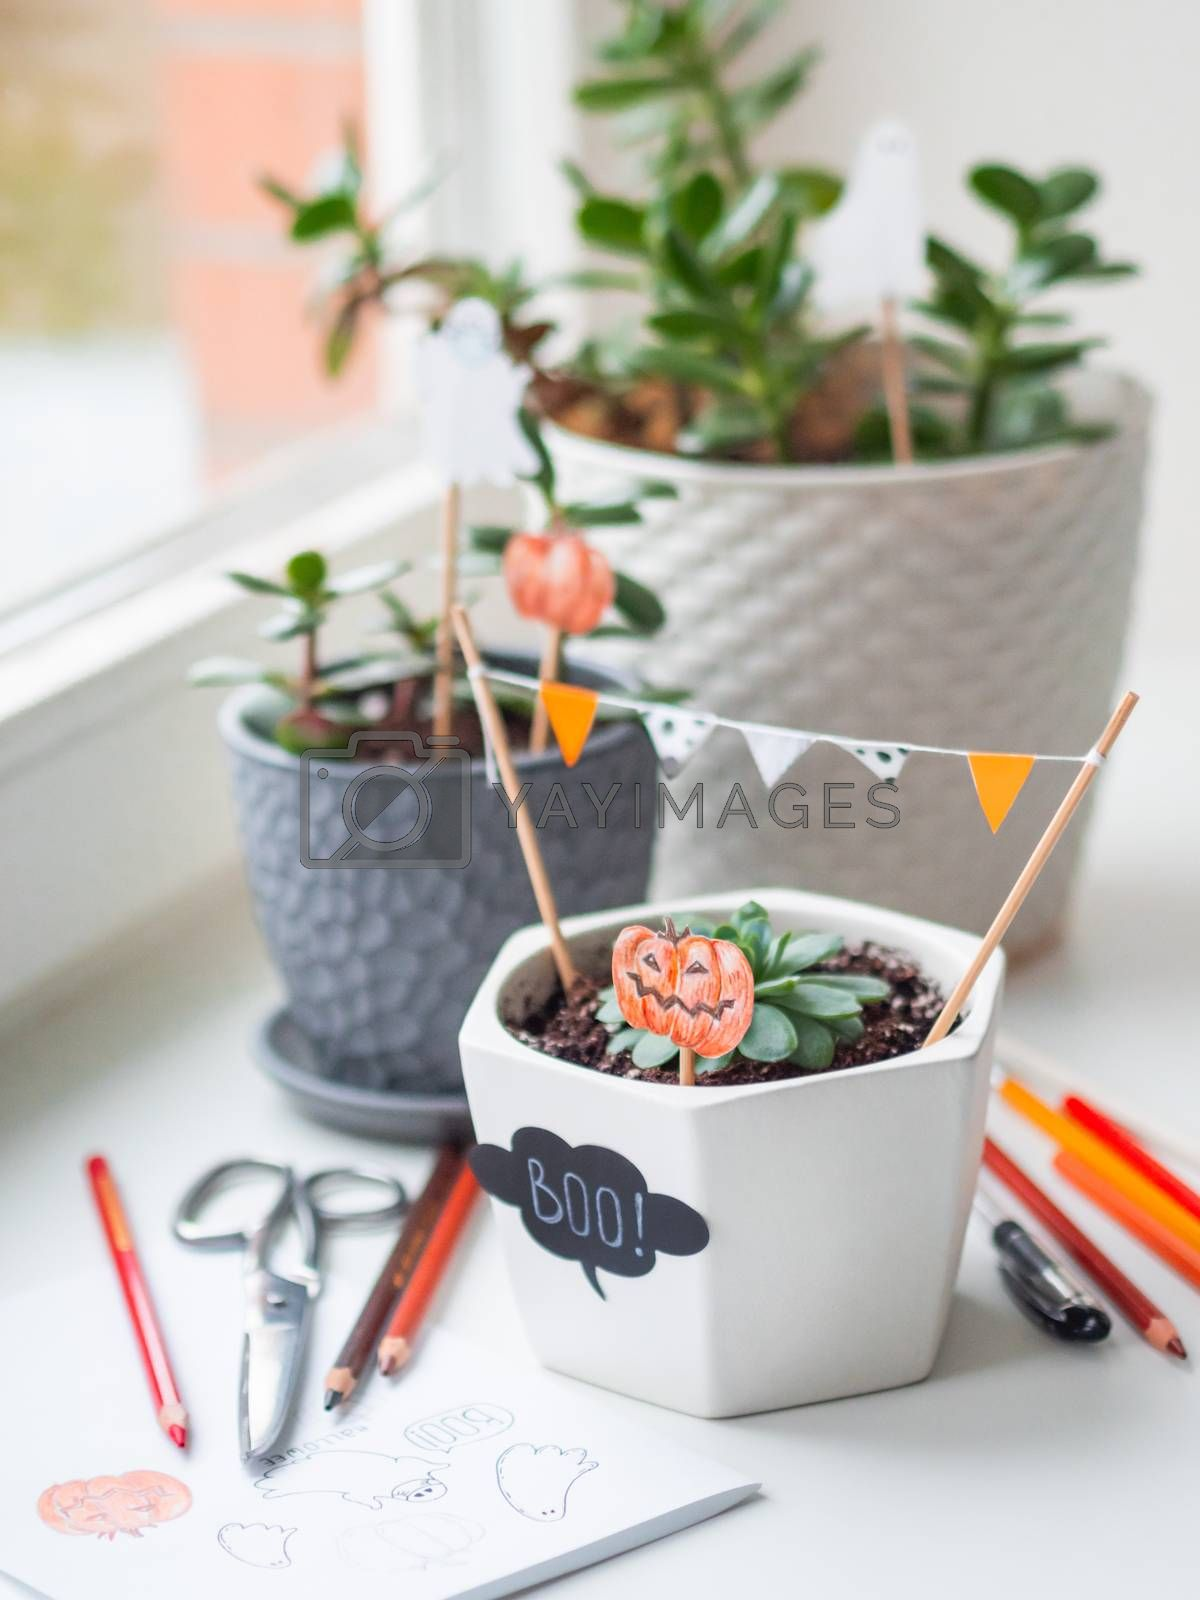 Hand drawn Halloween decorations in flower pots with crassula succulent plants. Ghost and pumpkins in flower pot. Cozy home.